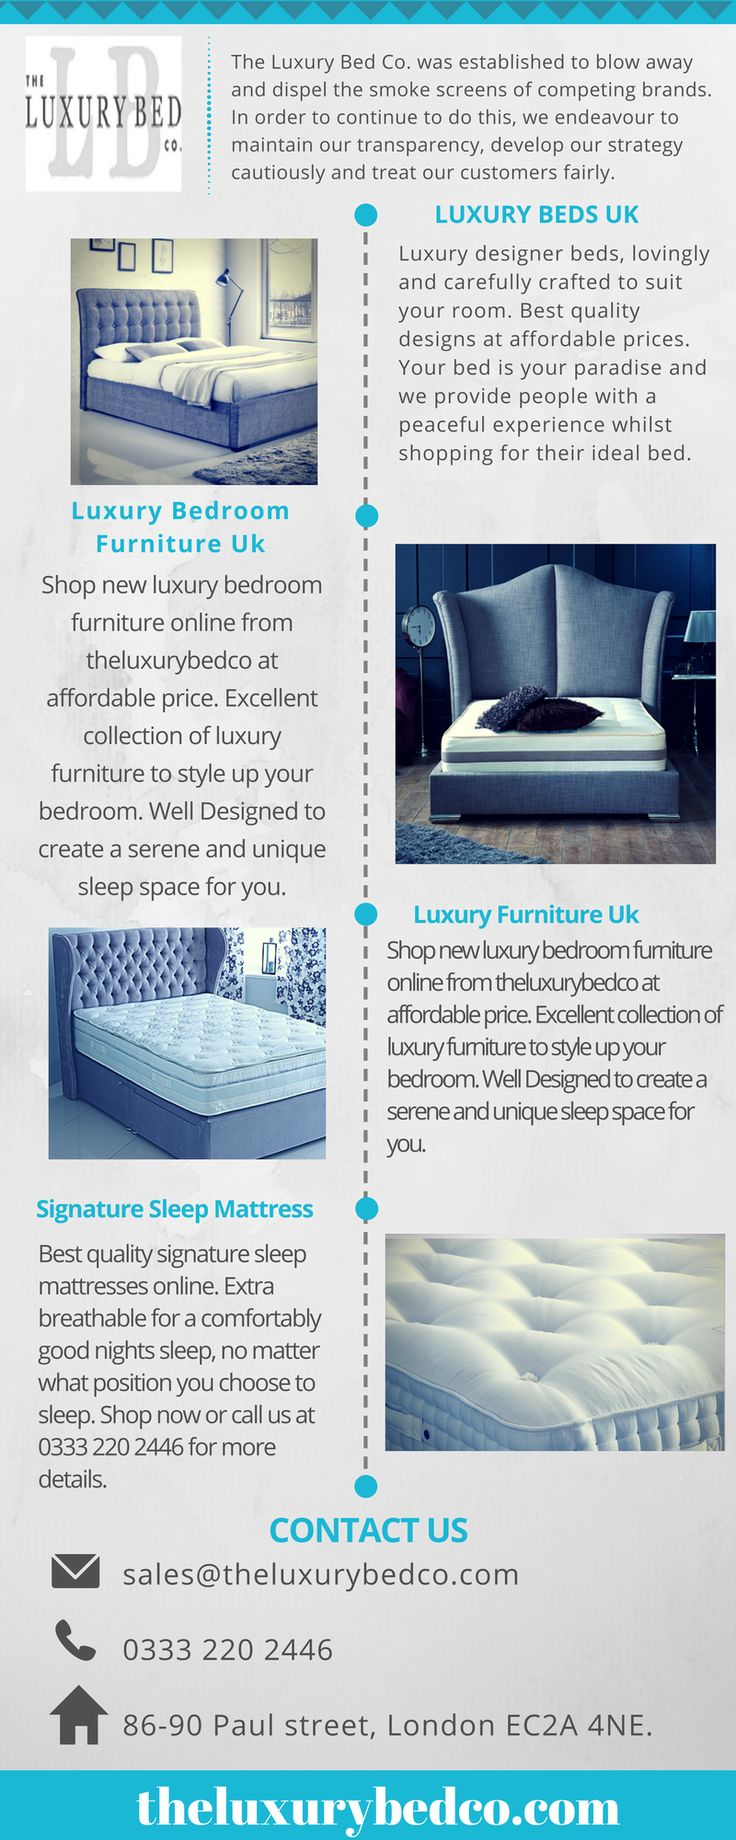 The Luxury Bed Co Offers Designer Beds Frames In A Range Of Sizes And Styles